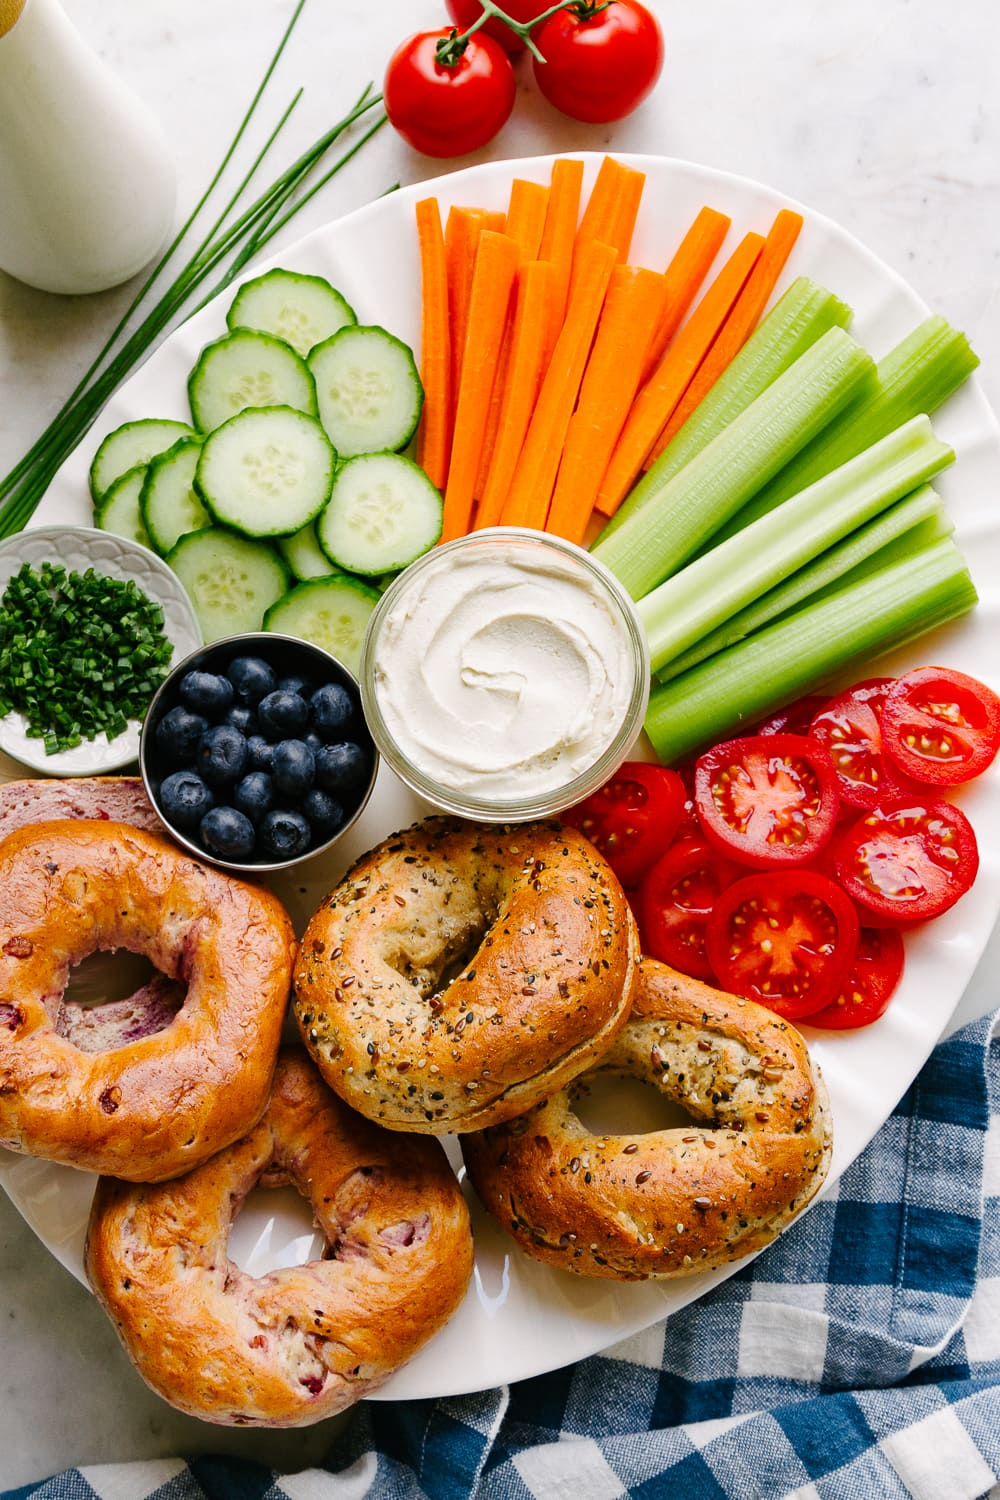 top down view of a vegan cream cheese and bagel platter with veggies and fruit.